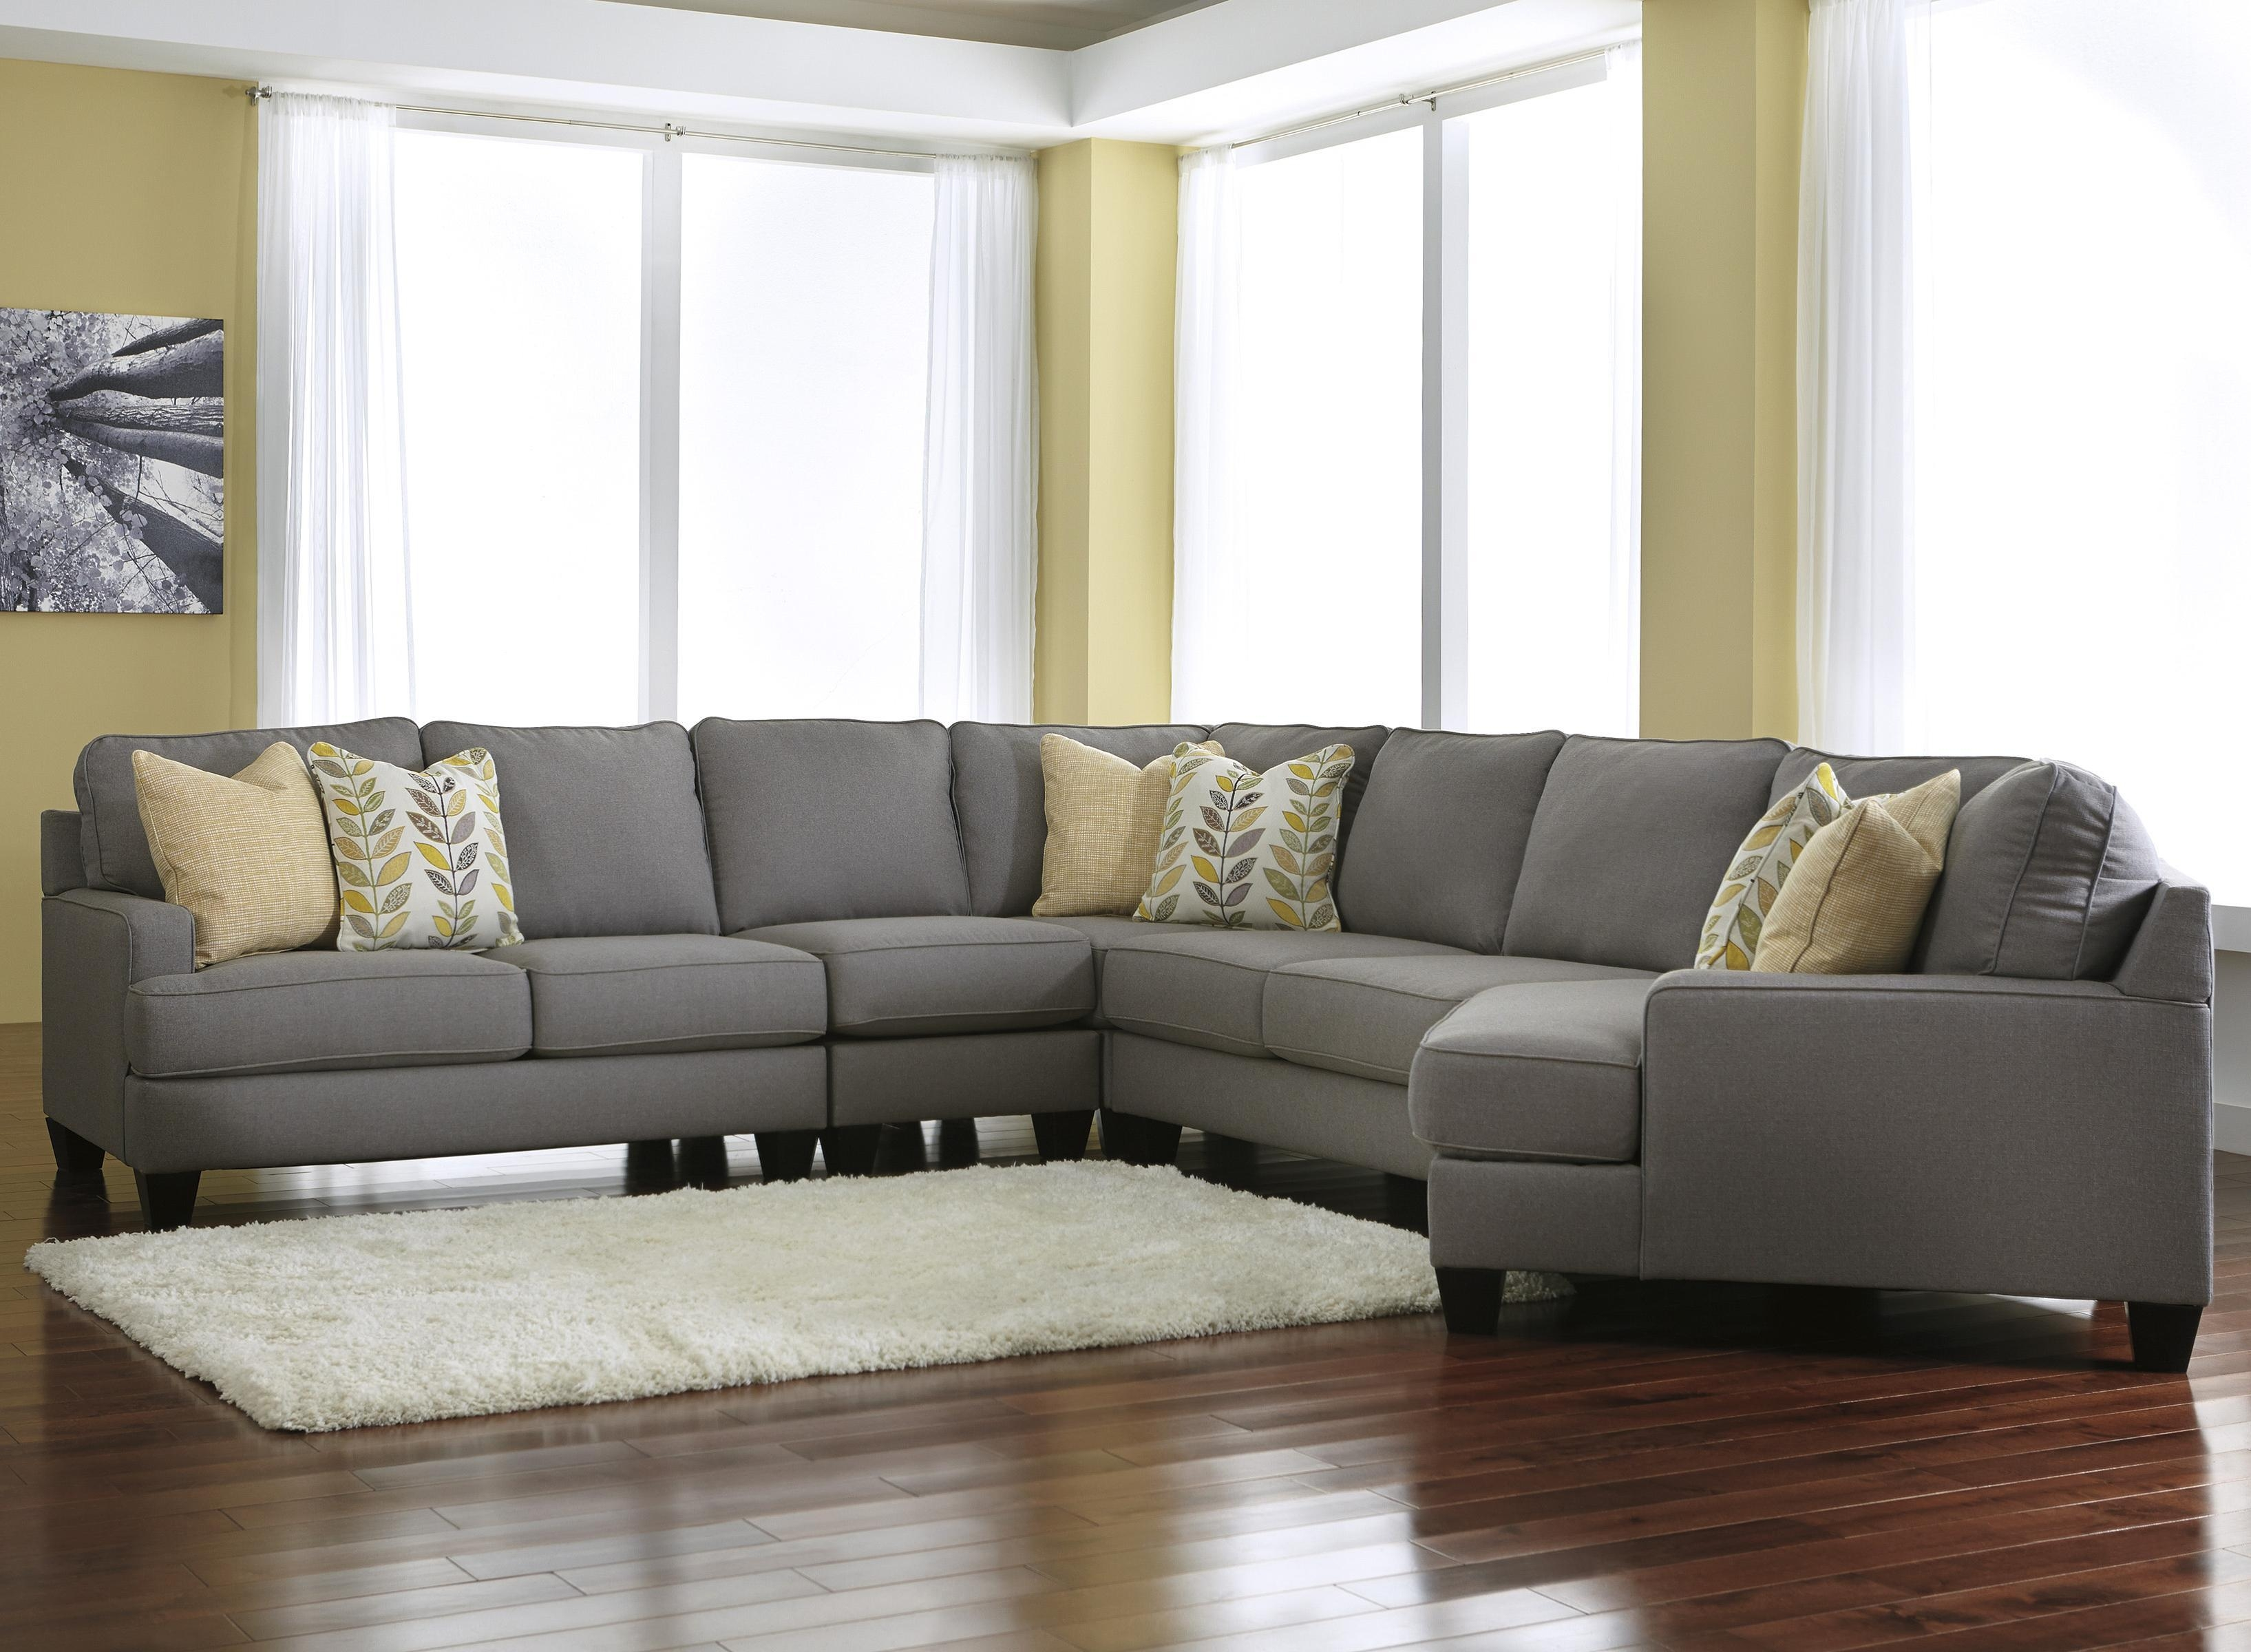 Signature Designashley Chamberly – Alloy Modern 5 Piece Pertaining To Sectional Cuddler (Image 20 of 20)